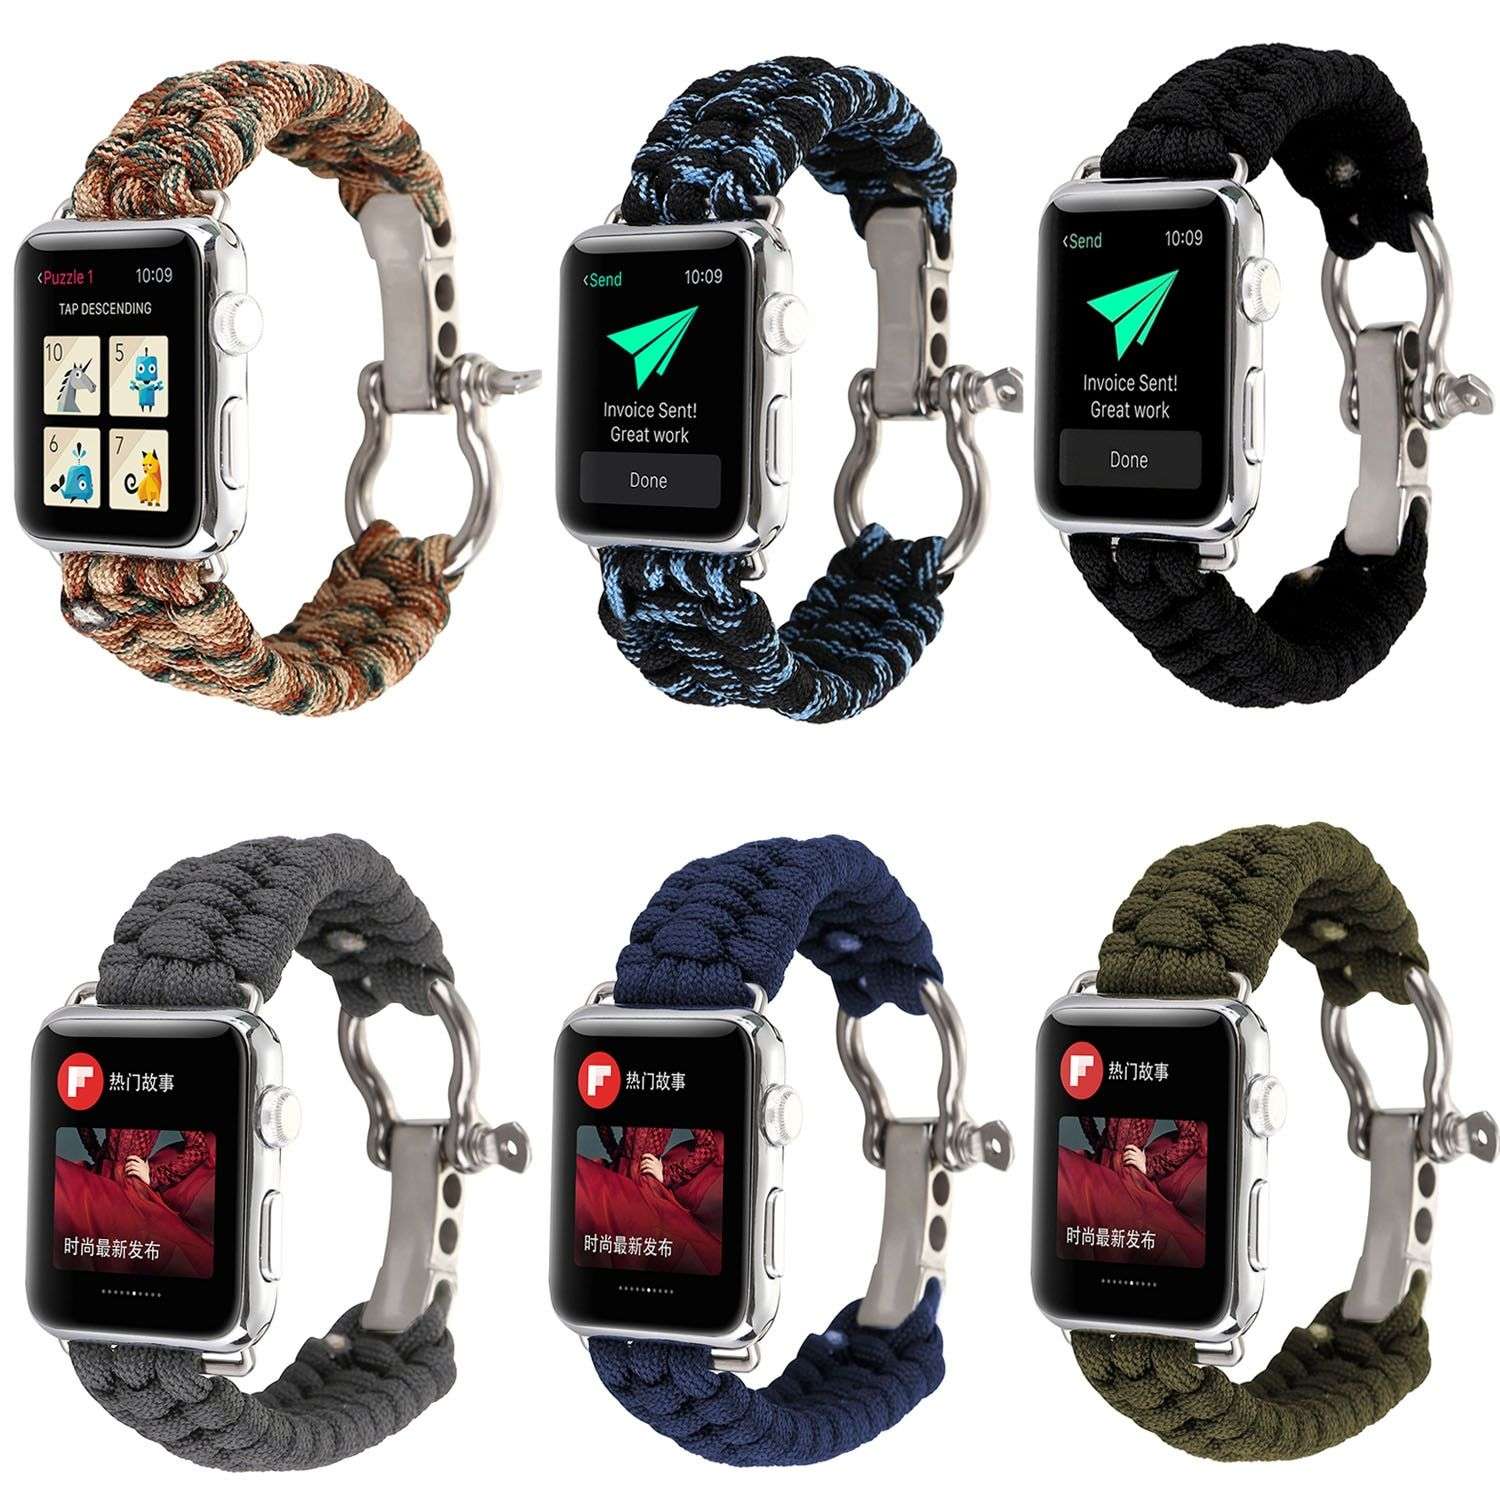 Outdoors Sports Wrist Strap For Apple Watch Band 42mm 38mm Survival Rope Metal Bolt Clasp Wristband For iWatch 1st 2nd 3rd